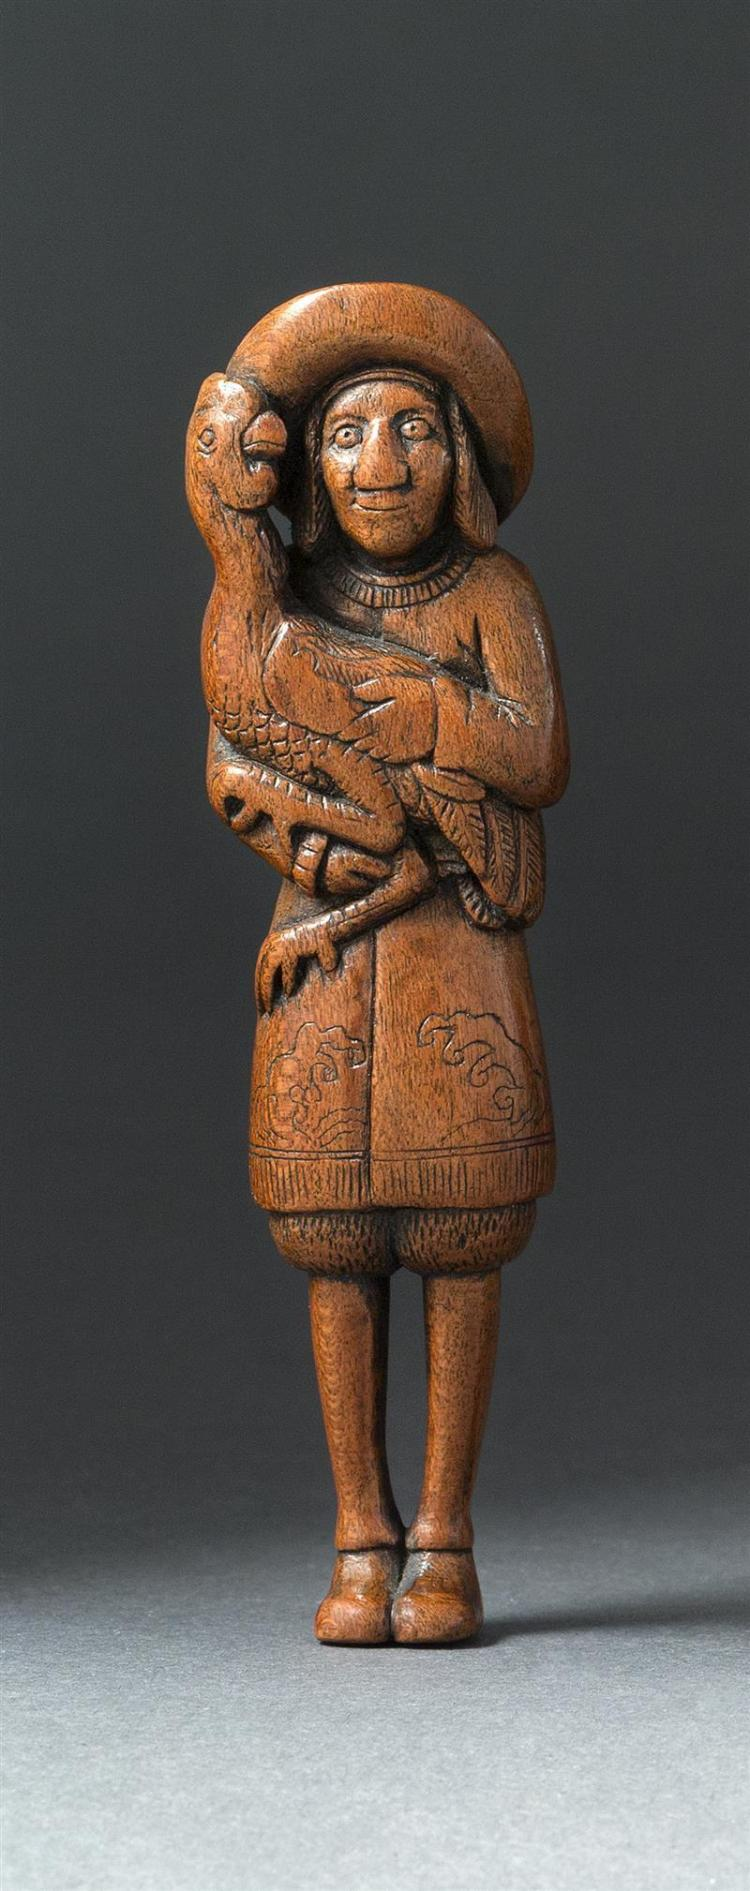 WOOD NETSUKE In the form of a Dutchman with wave-decorated costume standing while holding a rooster. Height 4.25